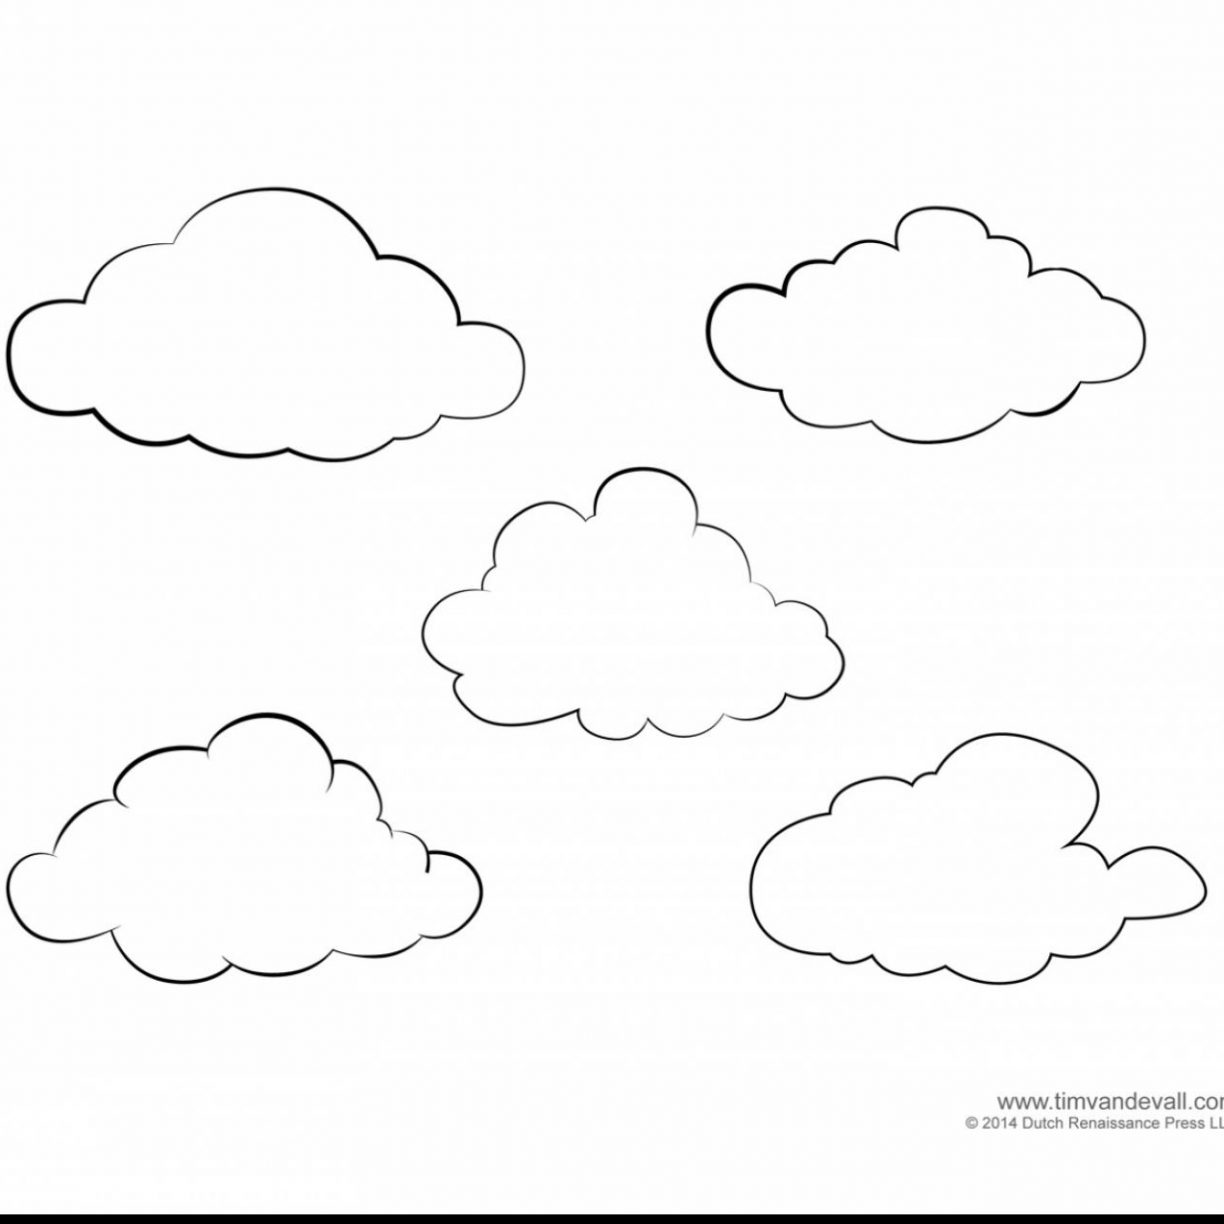 This is a photo of Dynamite Rain Cloud Coloring Page